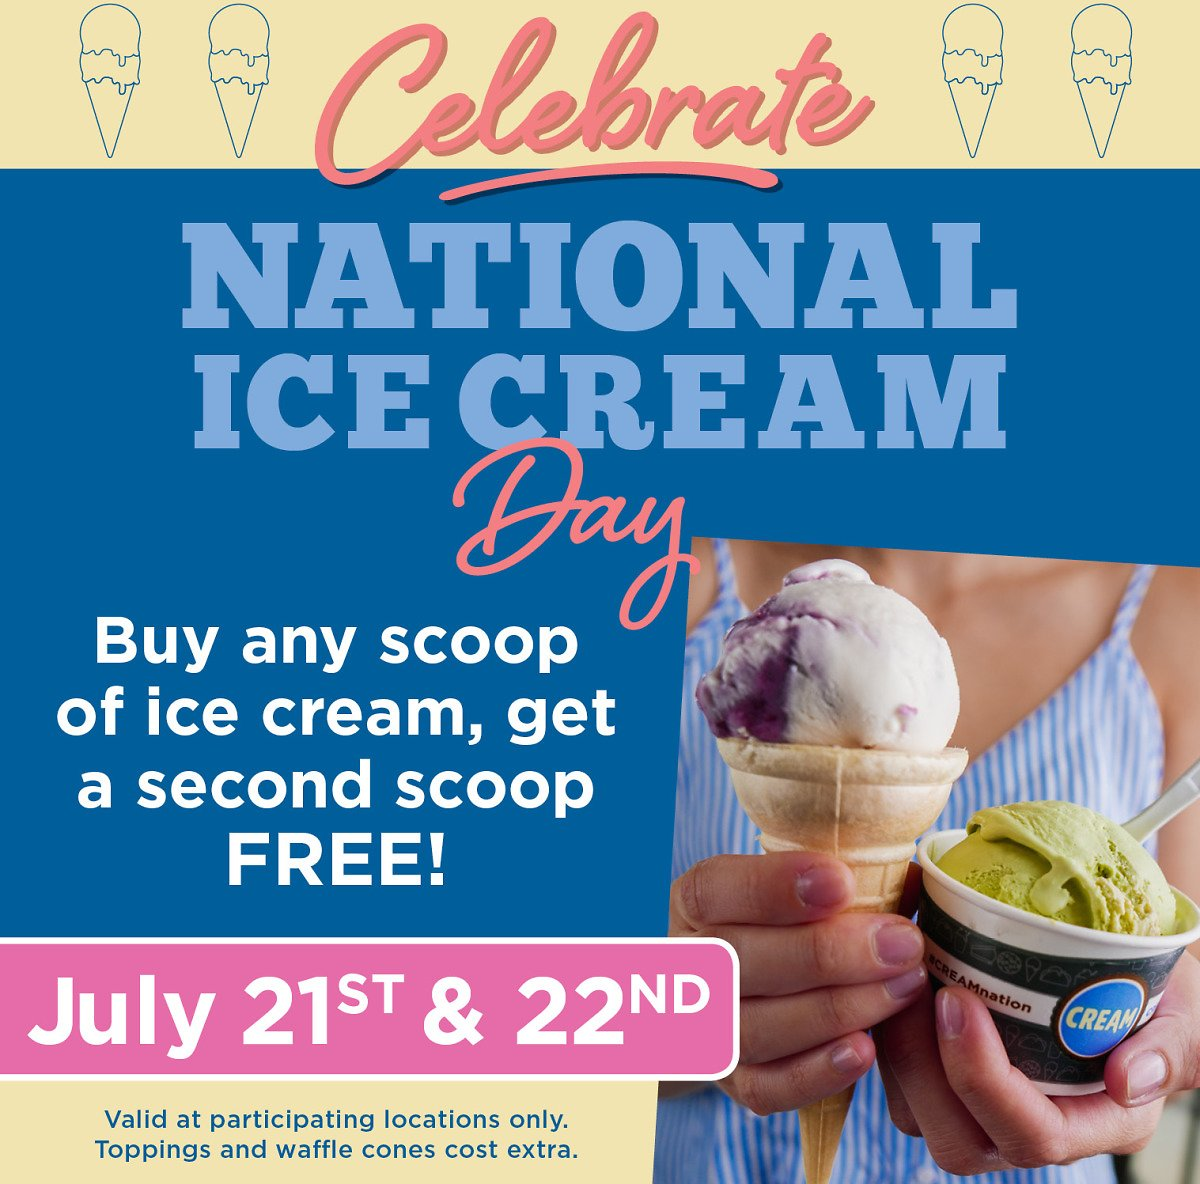 On July 21st and 22nd, Buy One Scoop At Cream and Score The Second Scoop for Free.